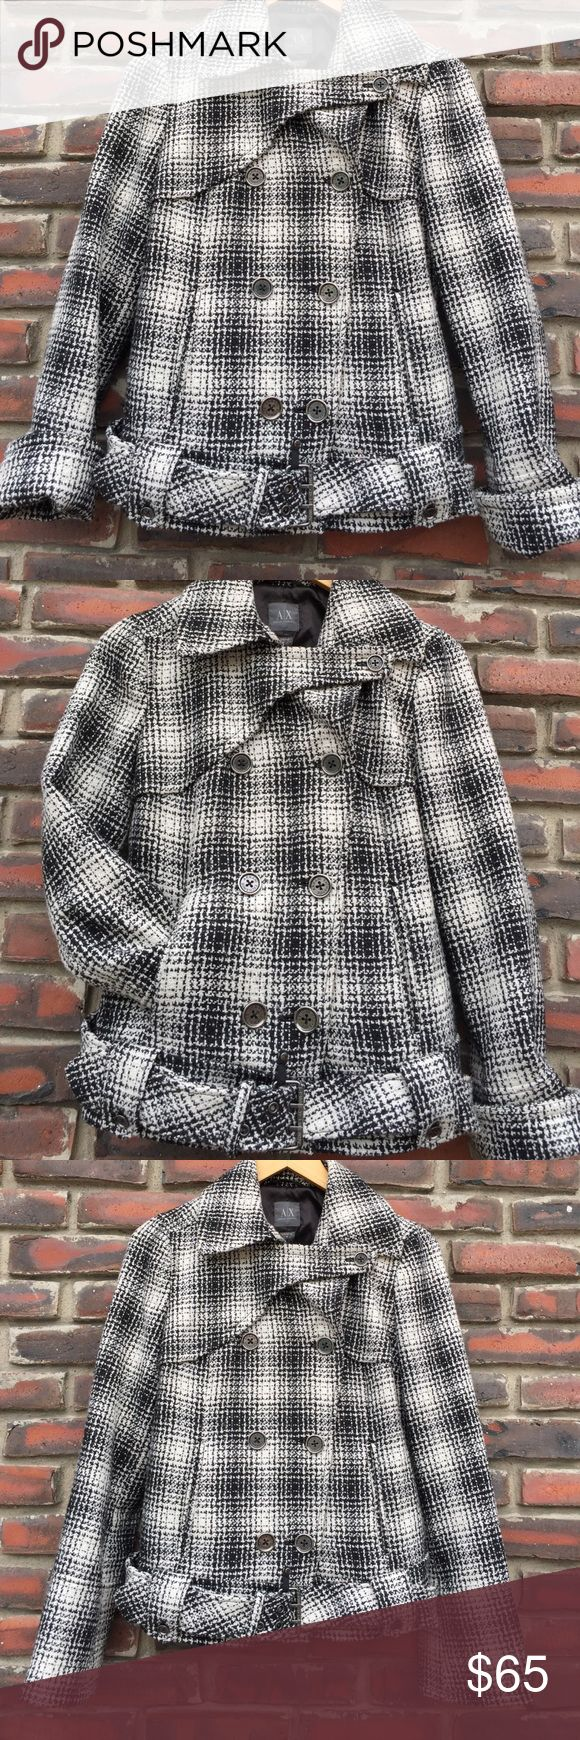 Armani Exchange Black & White Jacket M A/X Armani Exchange Black & White Checked Jacket, size medium, button-down, belted, collard, two front side slide pockets, absolutely adorable with a pair of high black boots . A/X Armani Exchange Jackets & Coats